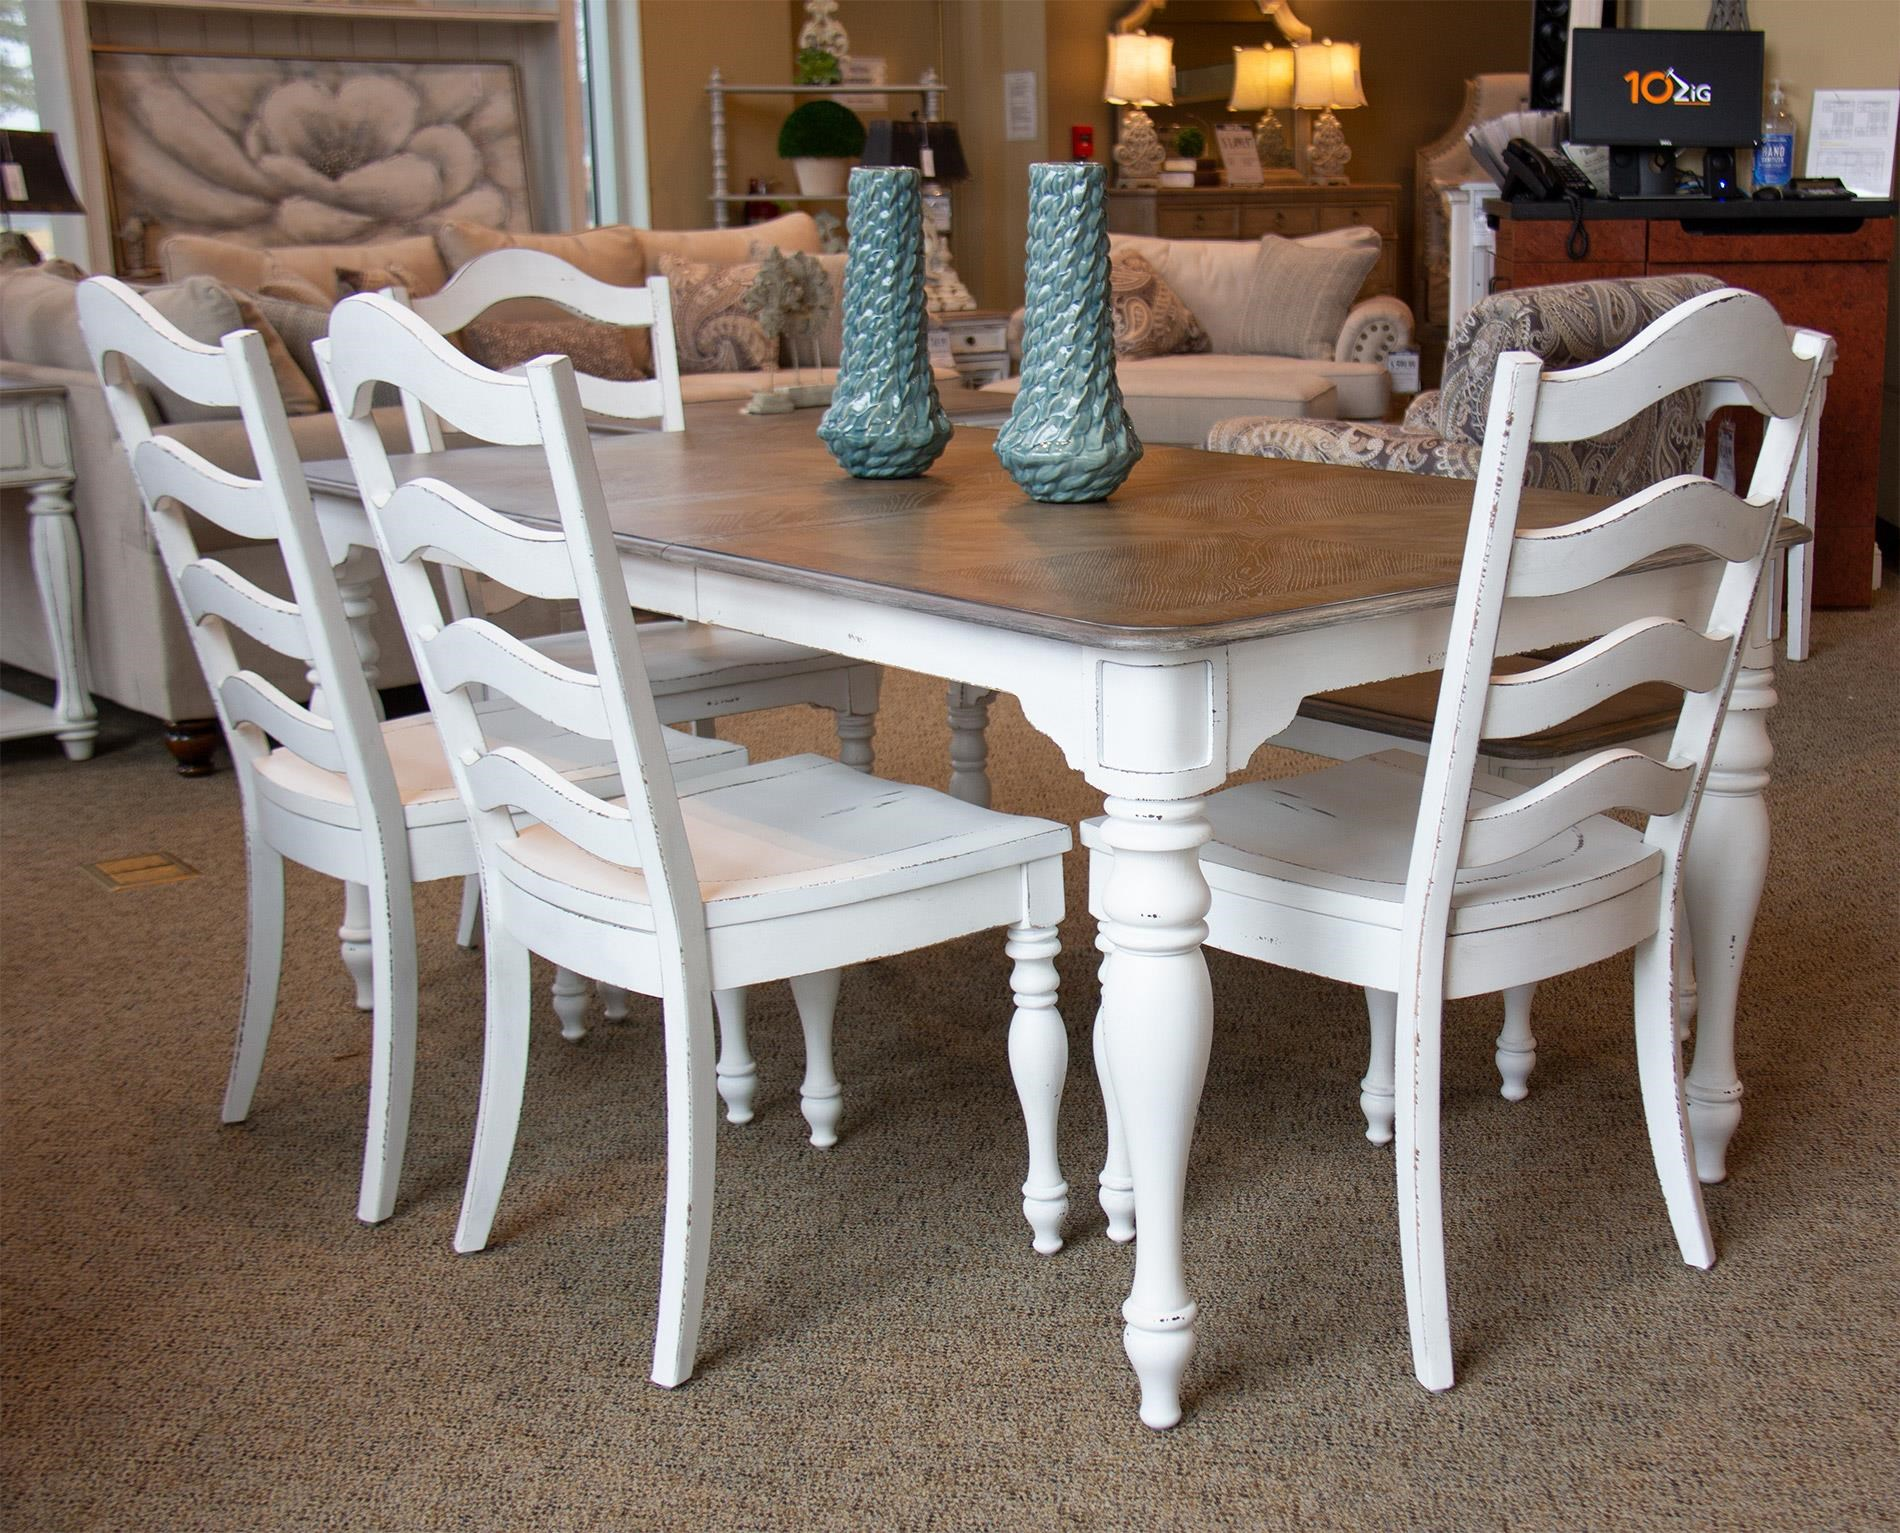 Rectangular Dining Table, 4 Chairs and Bench